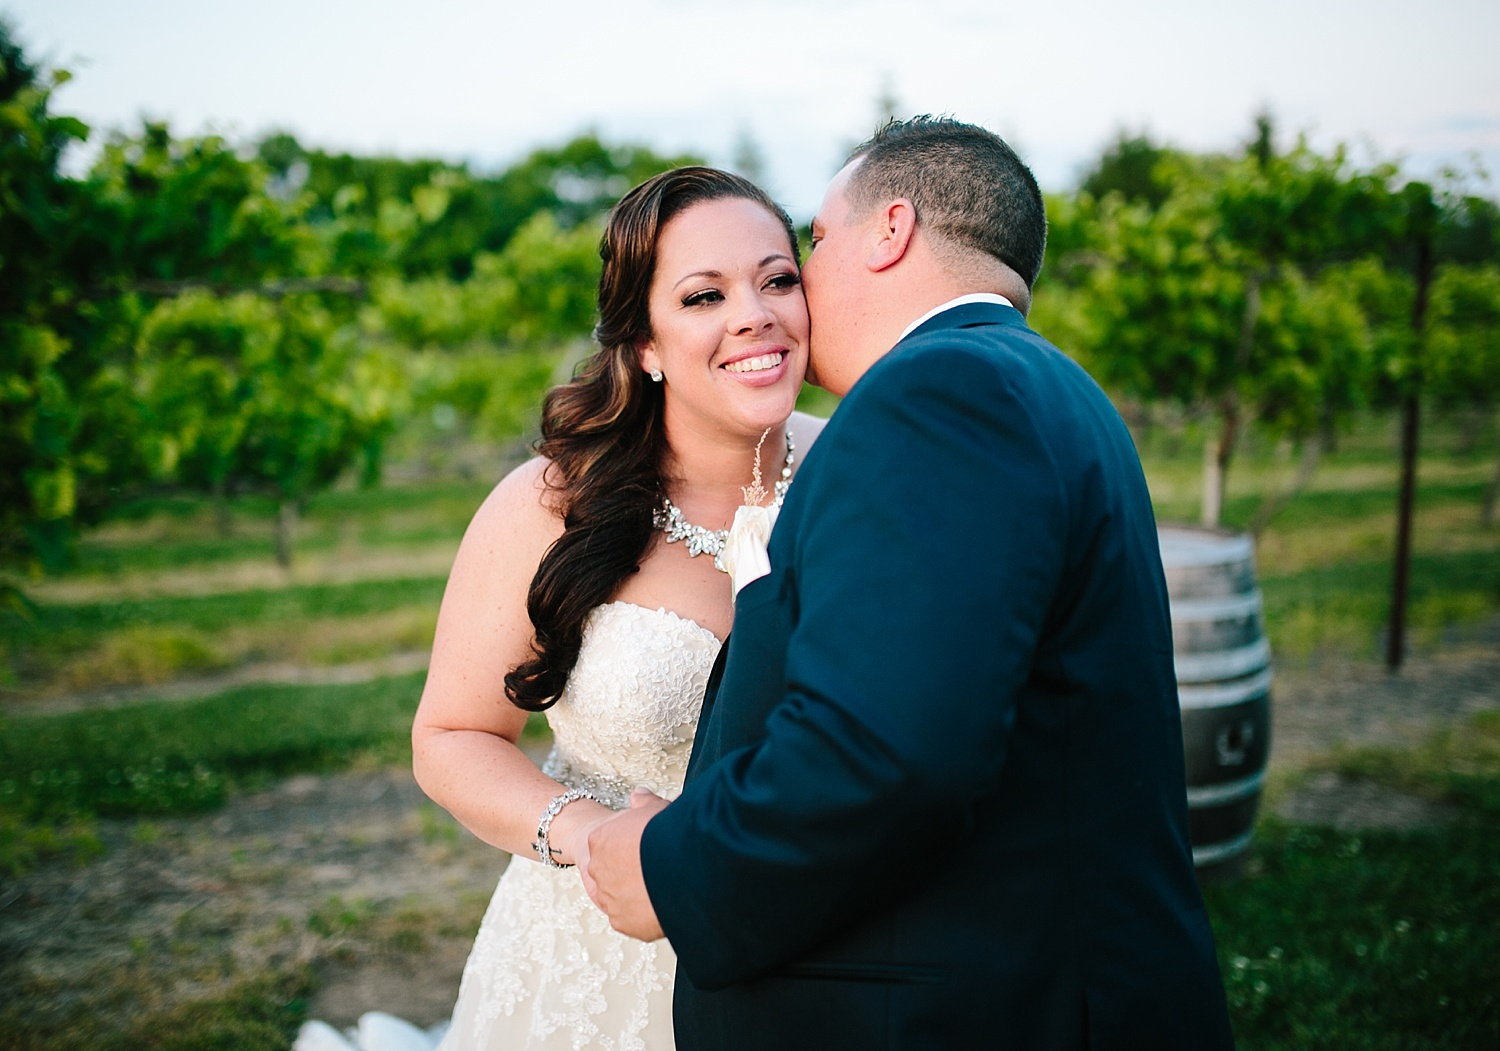 kellishawn_rosebankwinery_newtown_buckscounty_summer_wedding_image039.jpg